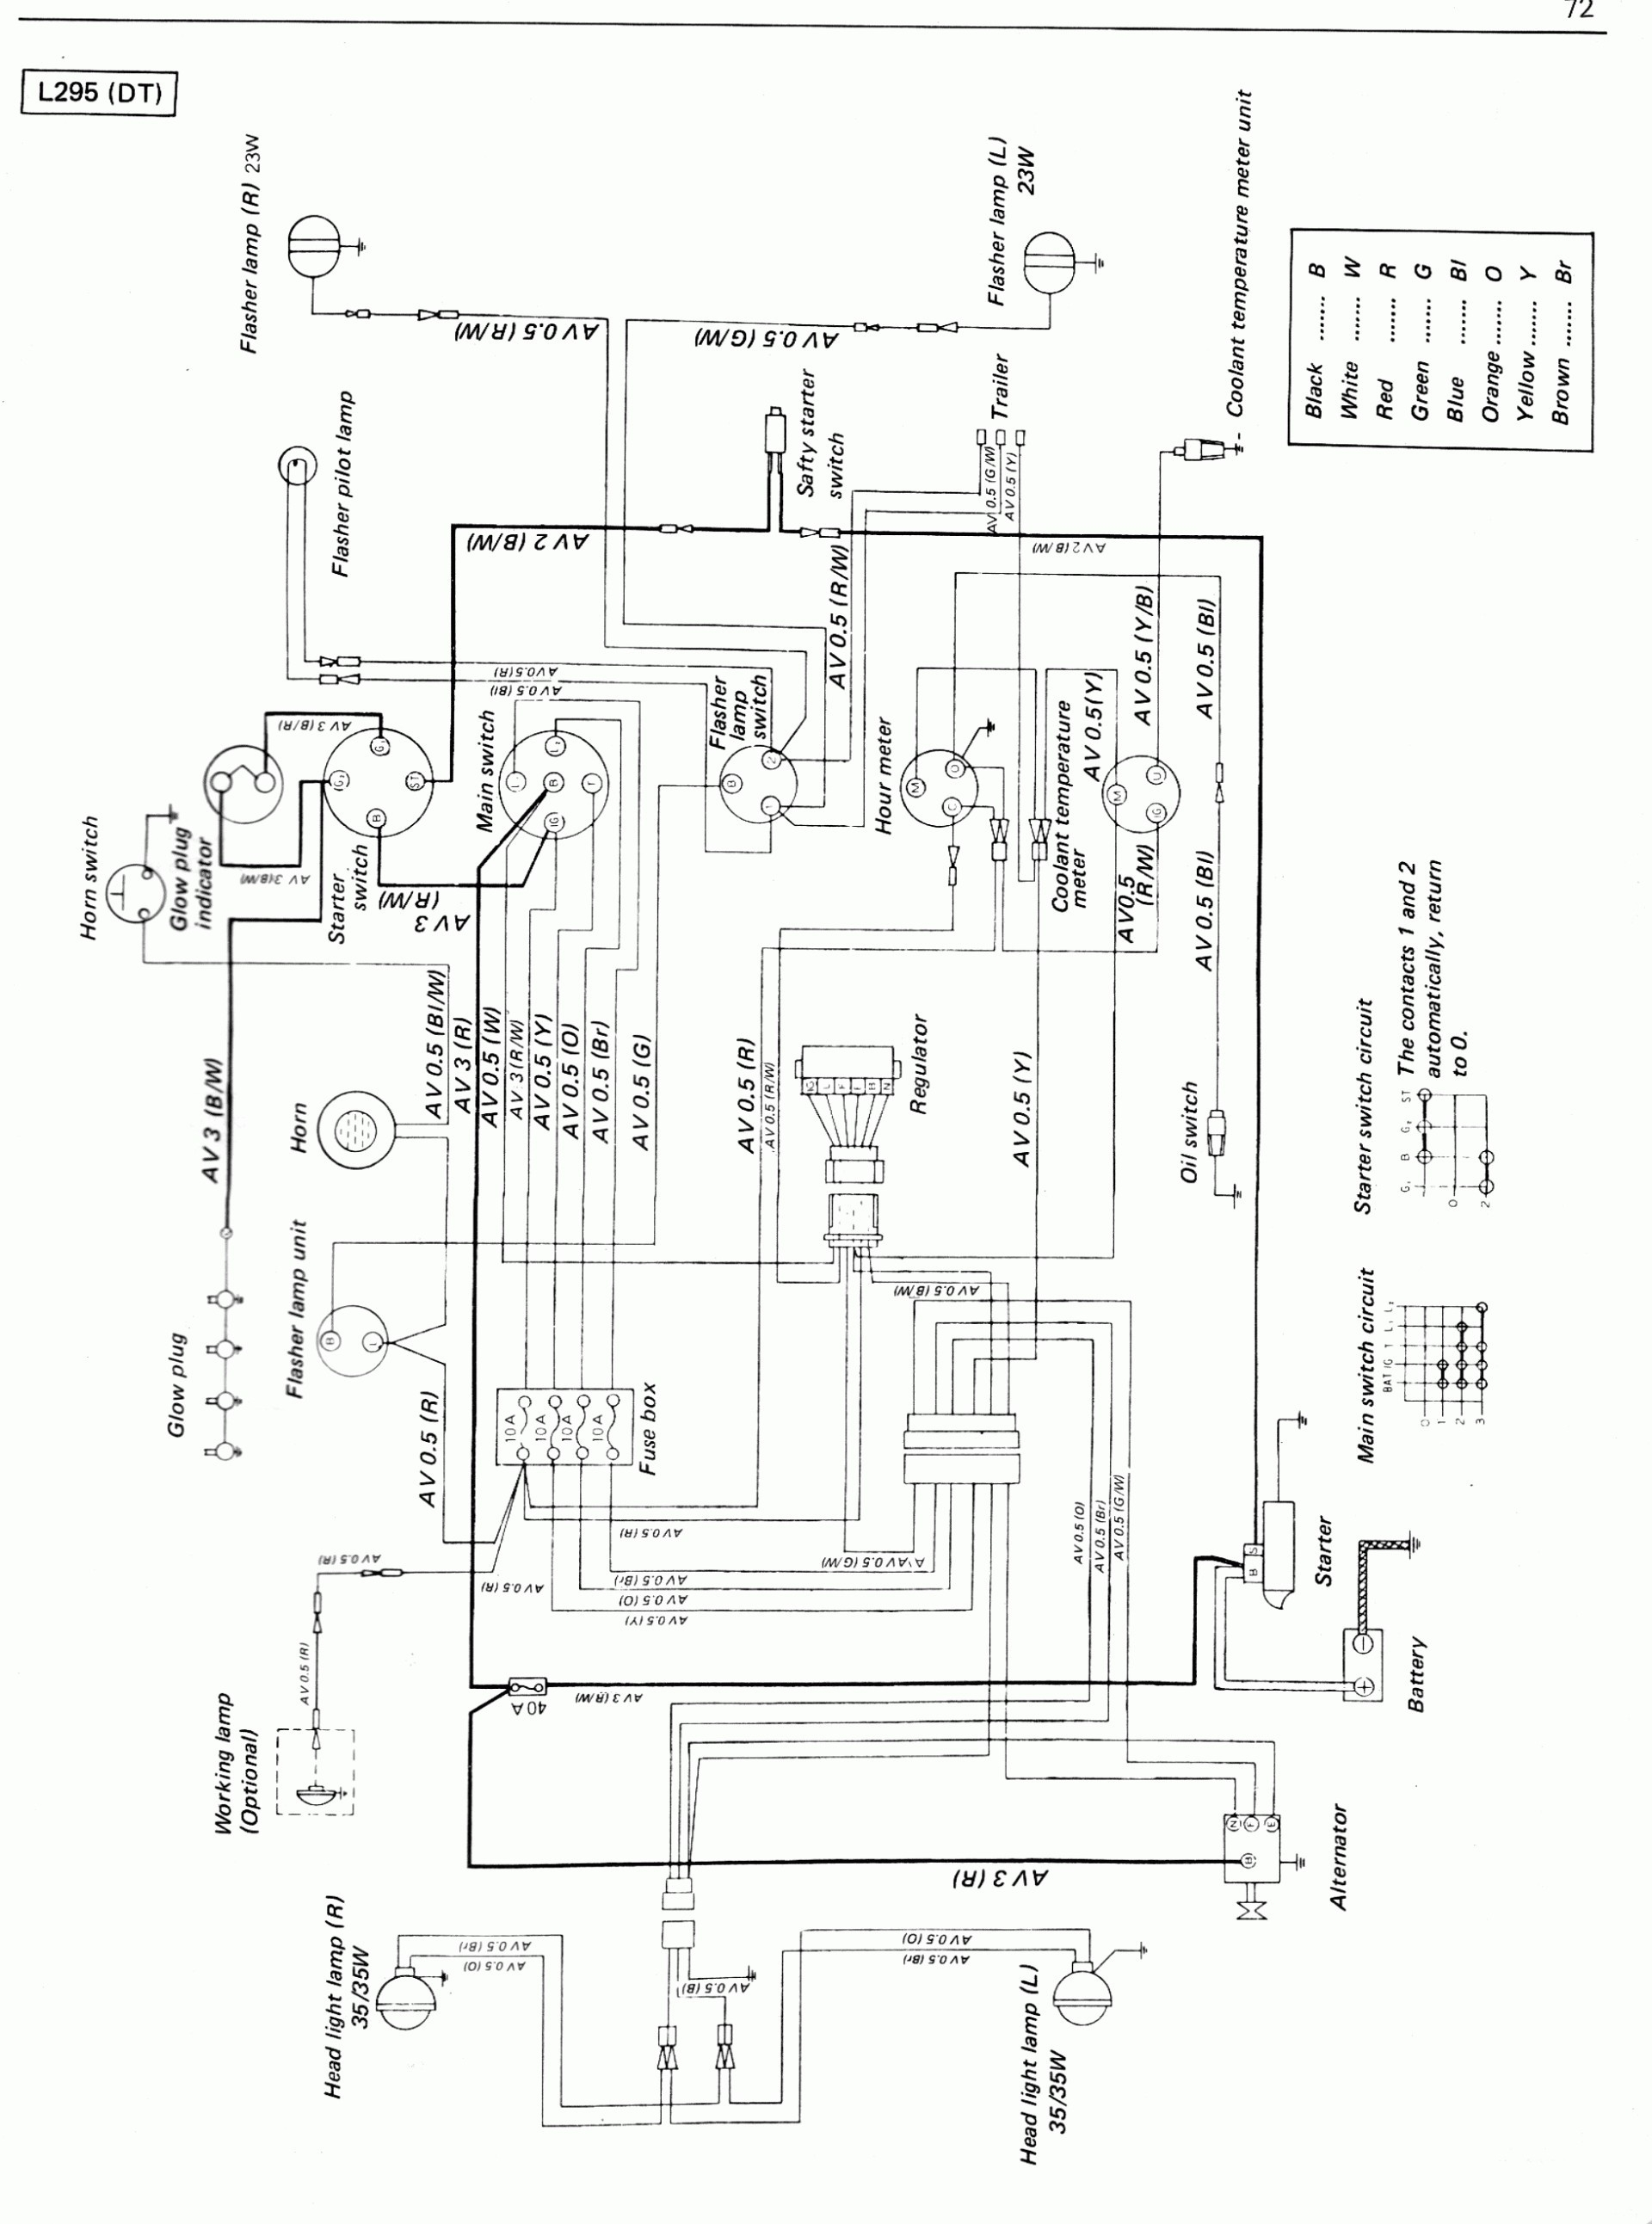 hight resolution of gf1800 kubota key switch wiring diagram schematic diagram downloadkubota wiring schematic wiring diagram z4gl6500s kubota wiring